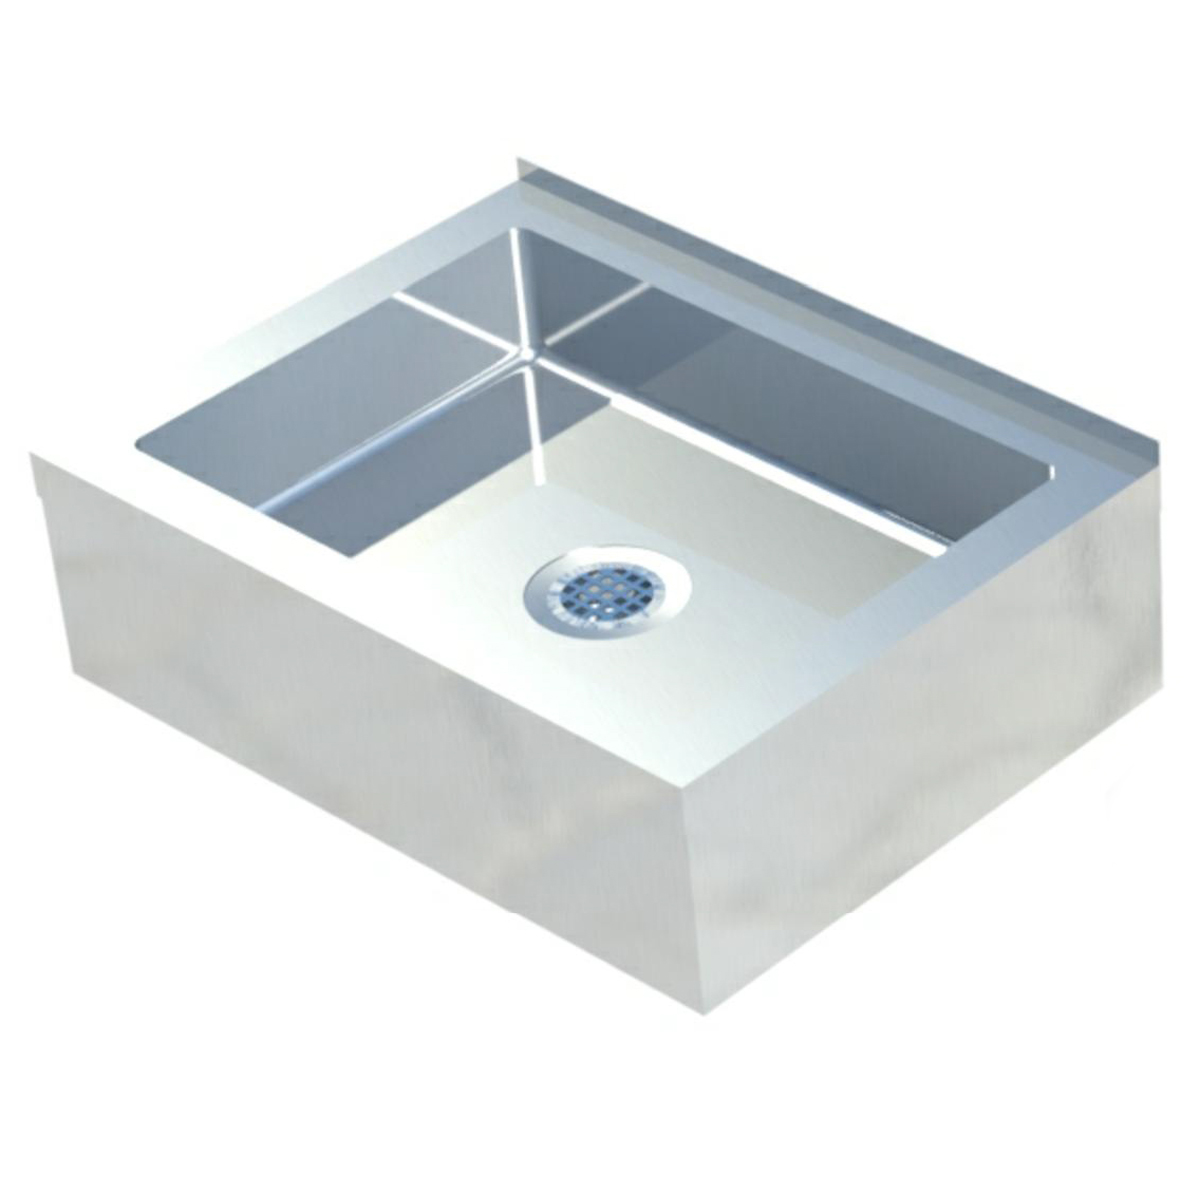 - Sapphire SMMS-331 Mop Sink 33 Left To Right X 25 Front To Back, 6